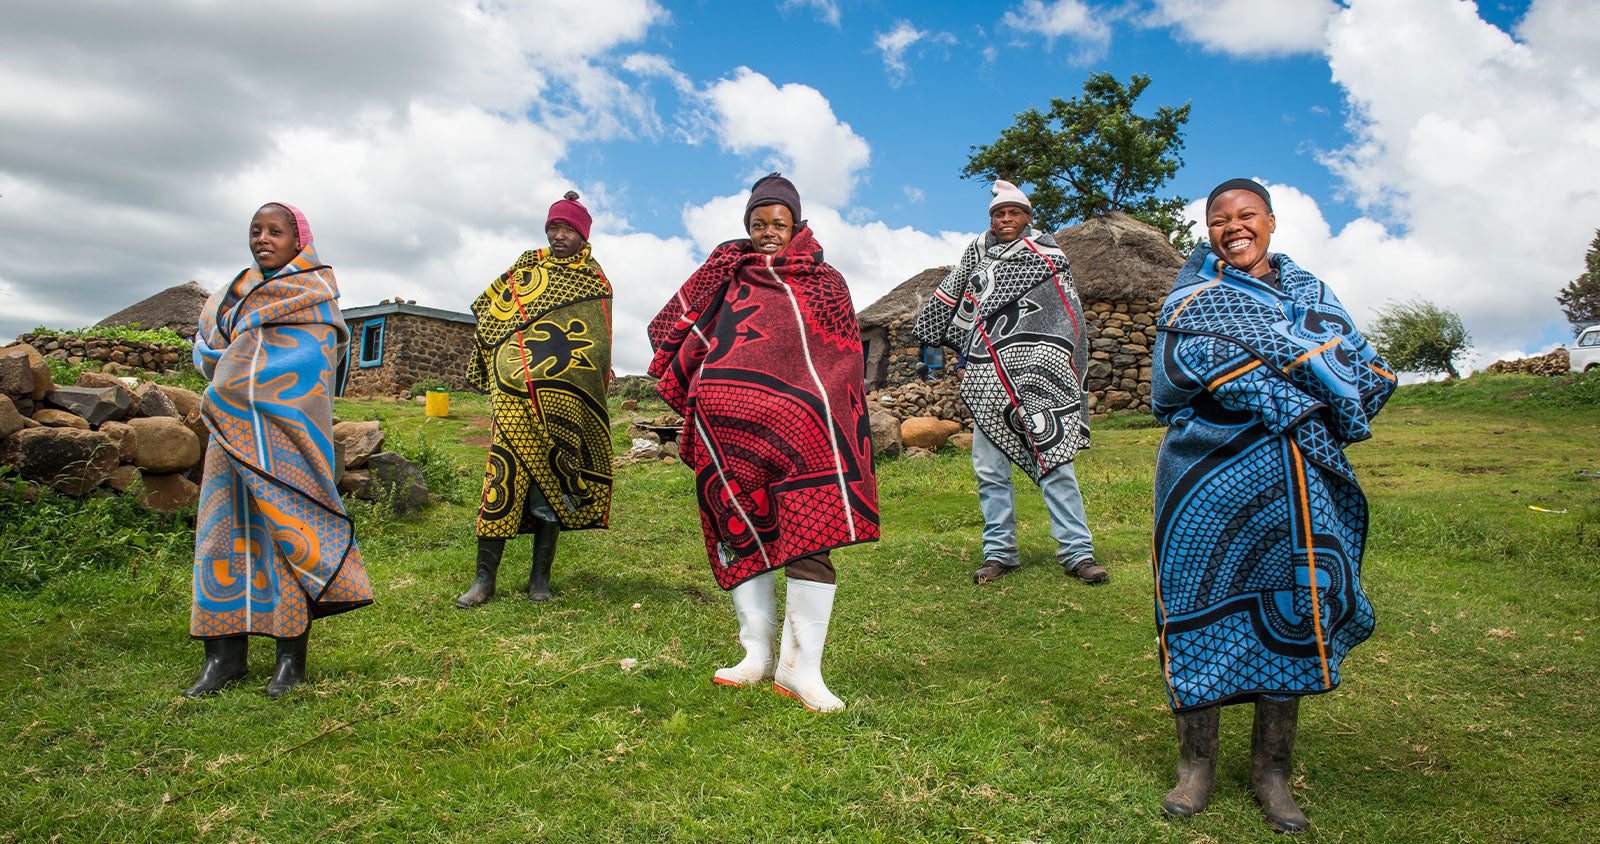 African blanket the basotho blanket worn by basotho people standing on green grass in front of traditional housing